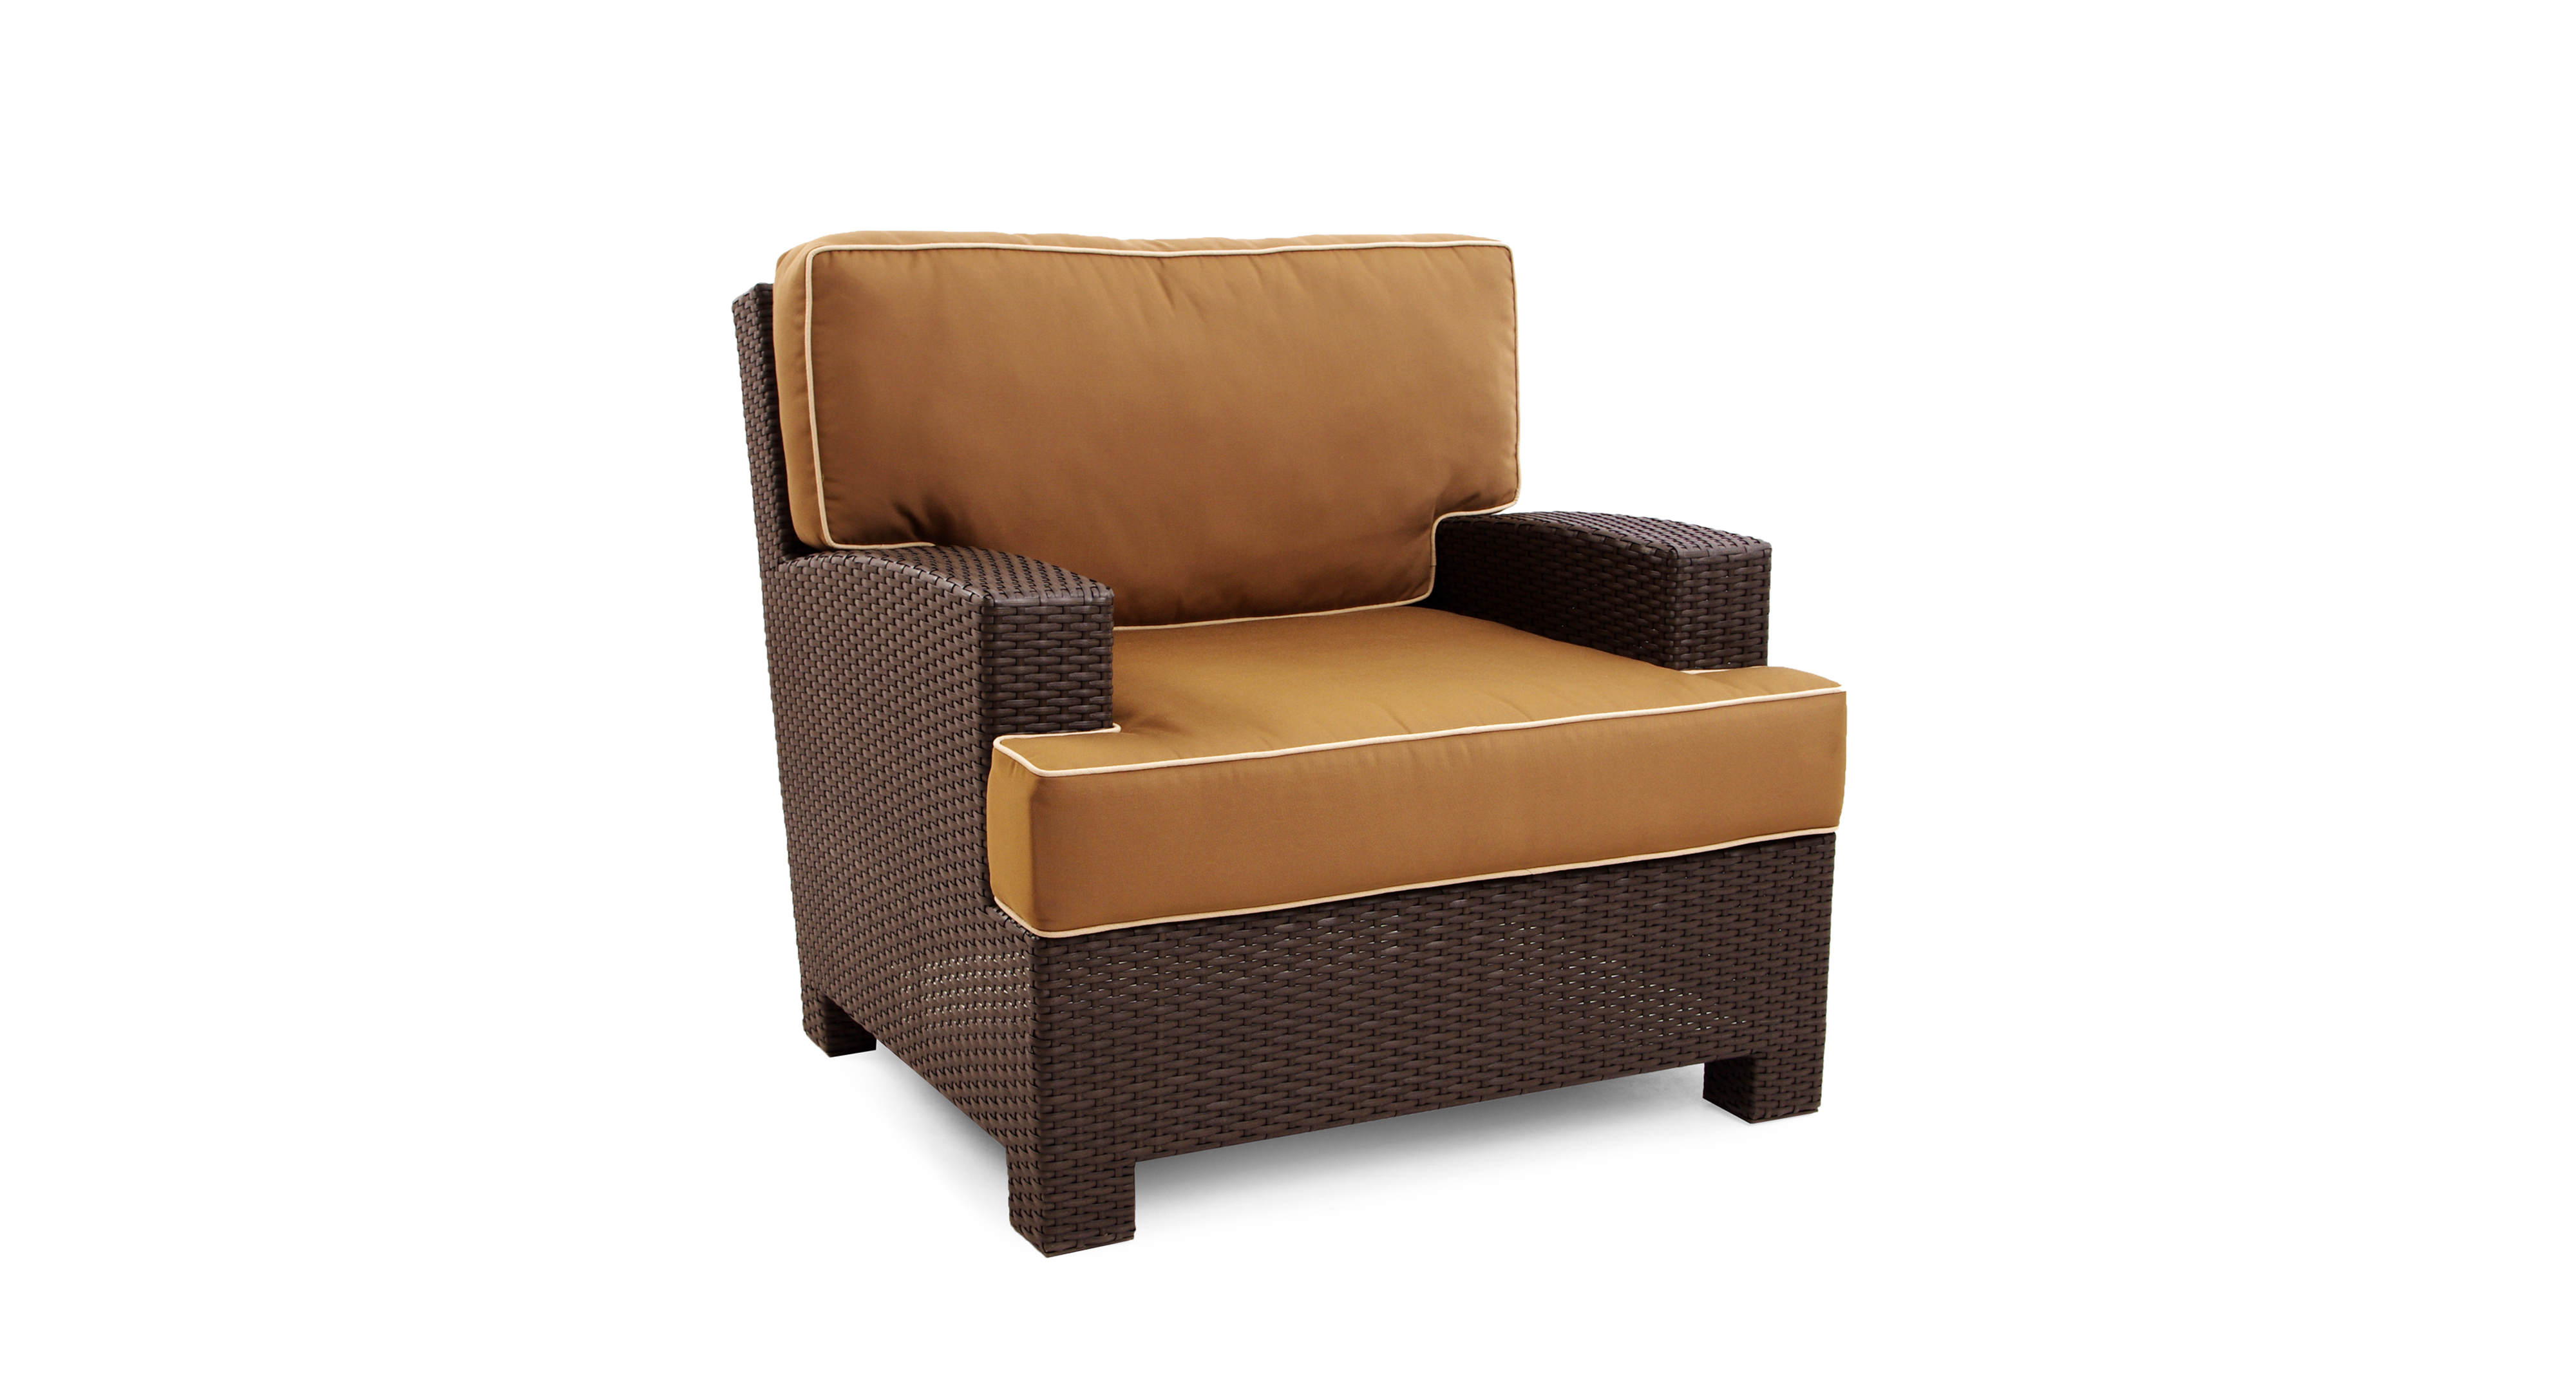 Remarkable Antigua Wicker Outdoor Lounge Chair Products Furniture Short Links Chair Design For Home Short Linksinfo